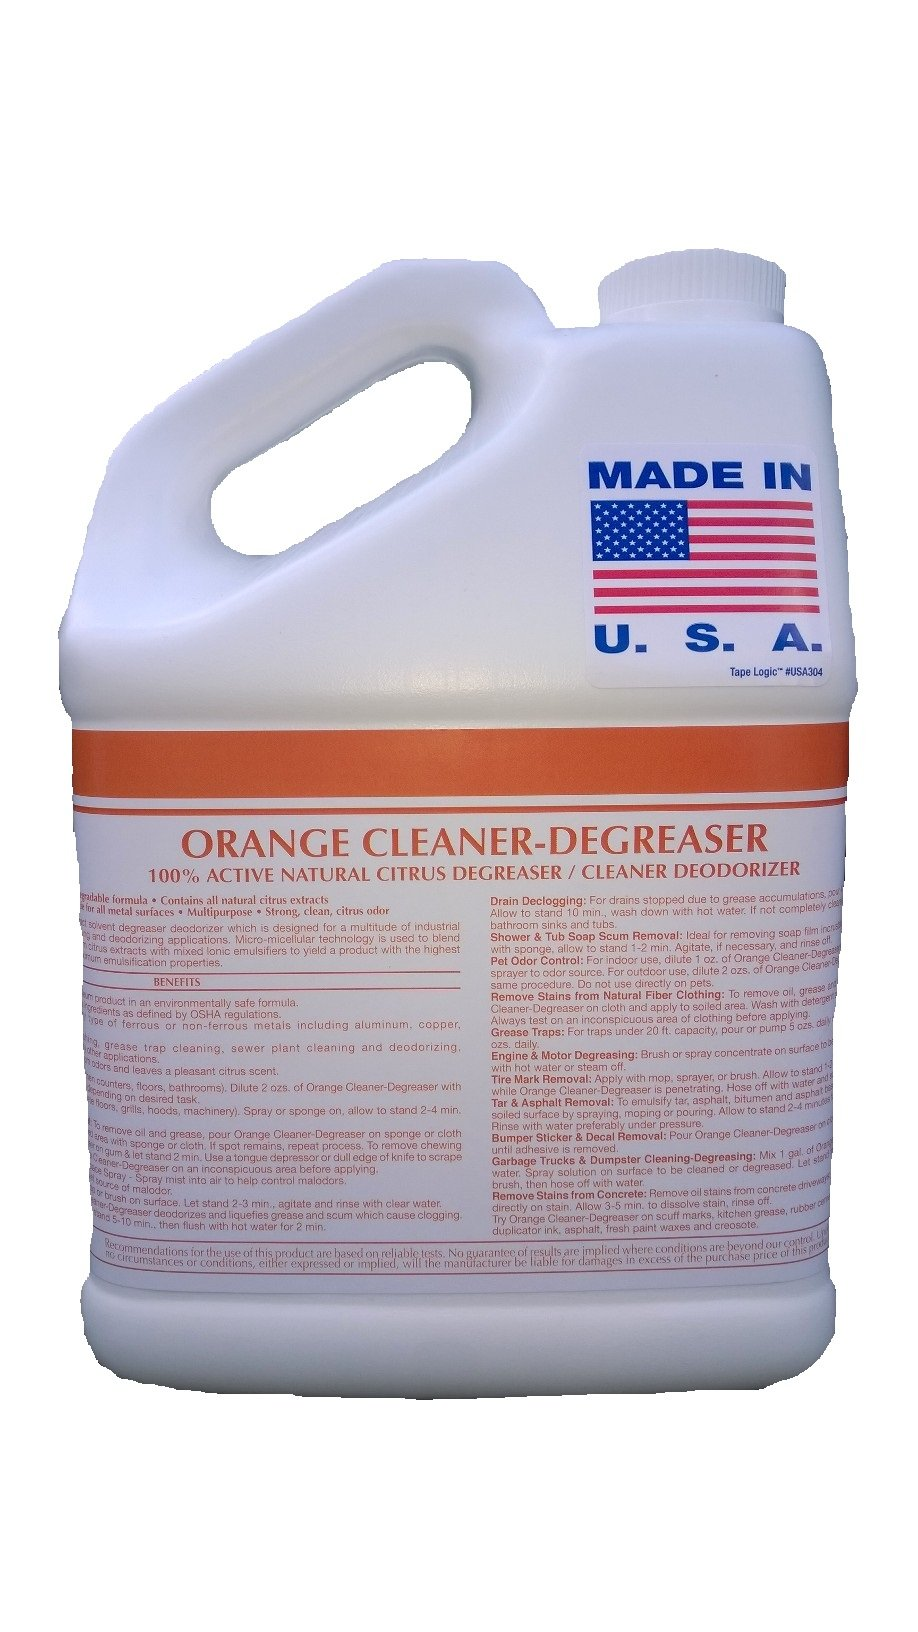 Patriot Chemical Sales 1 Gallon Orange Cleaner Degreaser 100% Active Natural Citrus Degreaser Cleaner Deodorizer Industrial Strength Concentrate